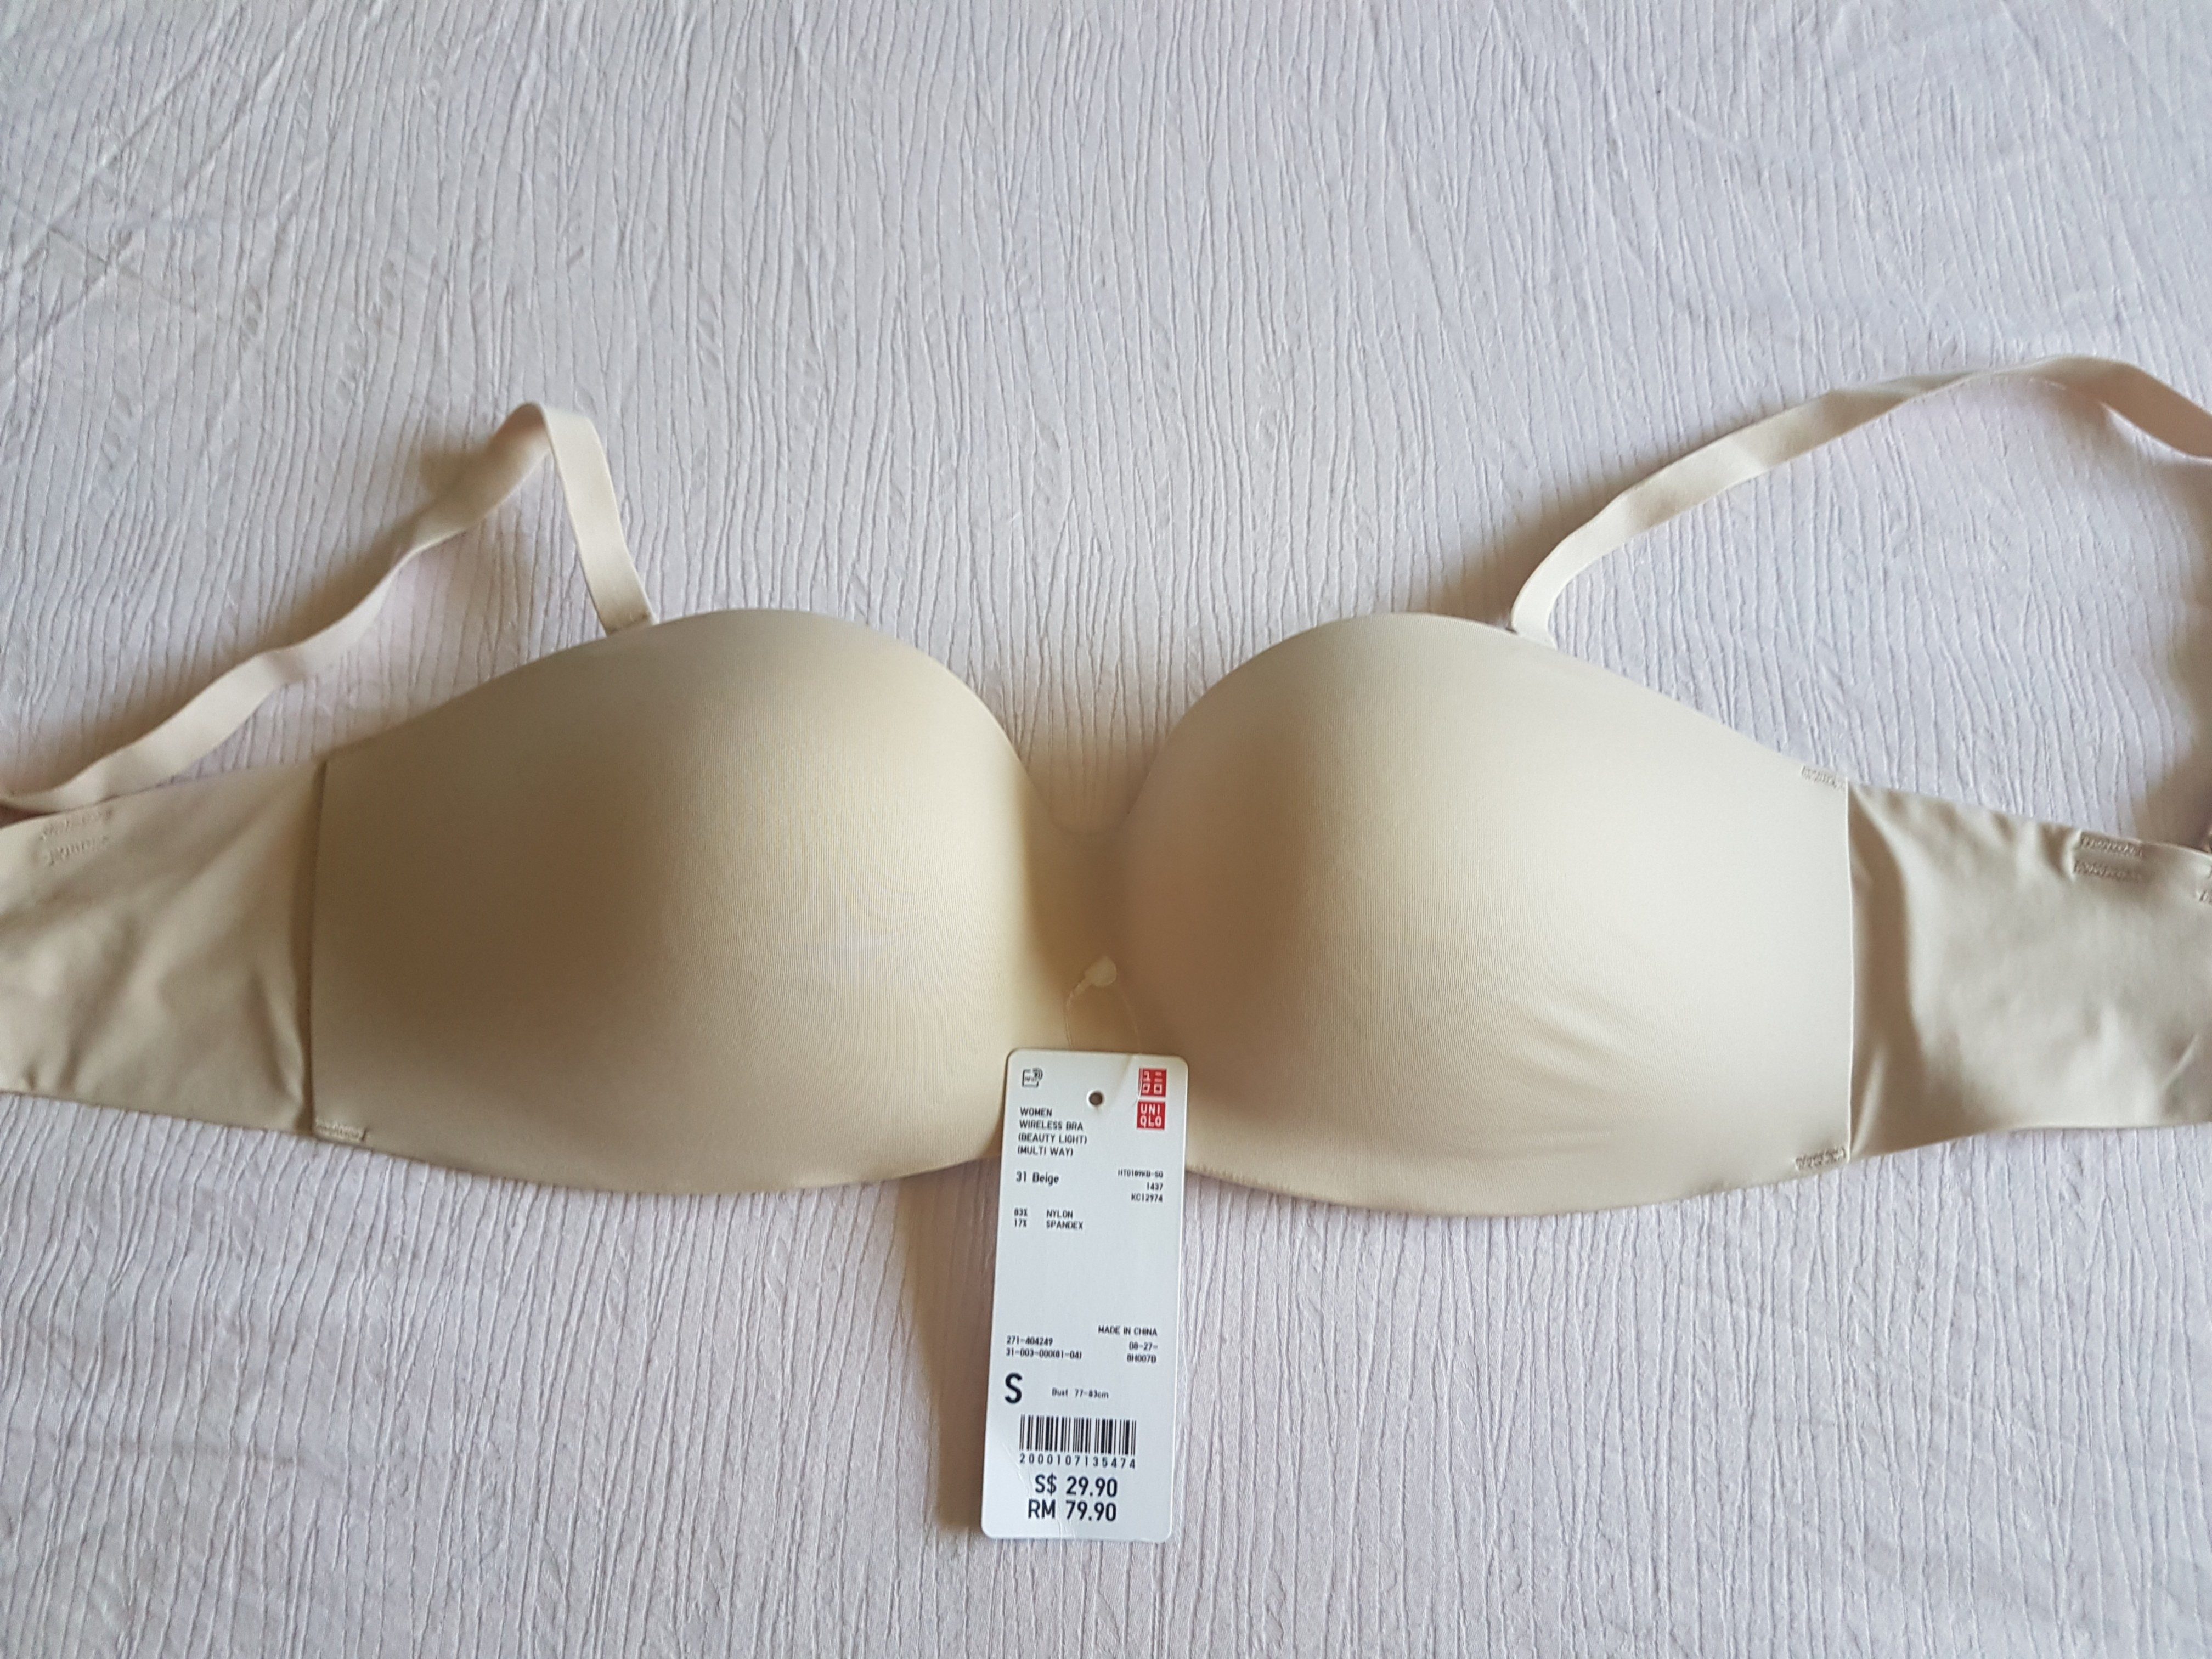 cd098ff0b23f1 Uniqlo Women Wireless Bra (Beauty Light Multi Way) in Beige